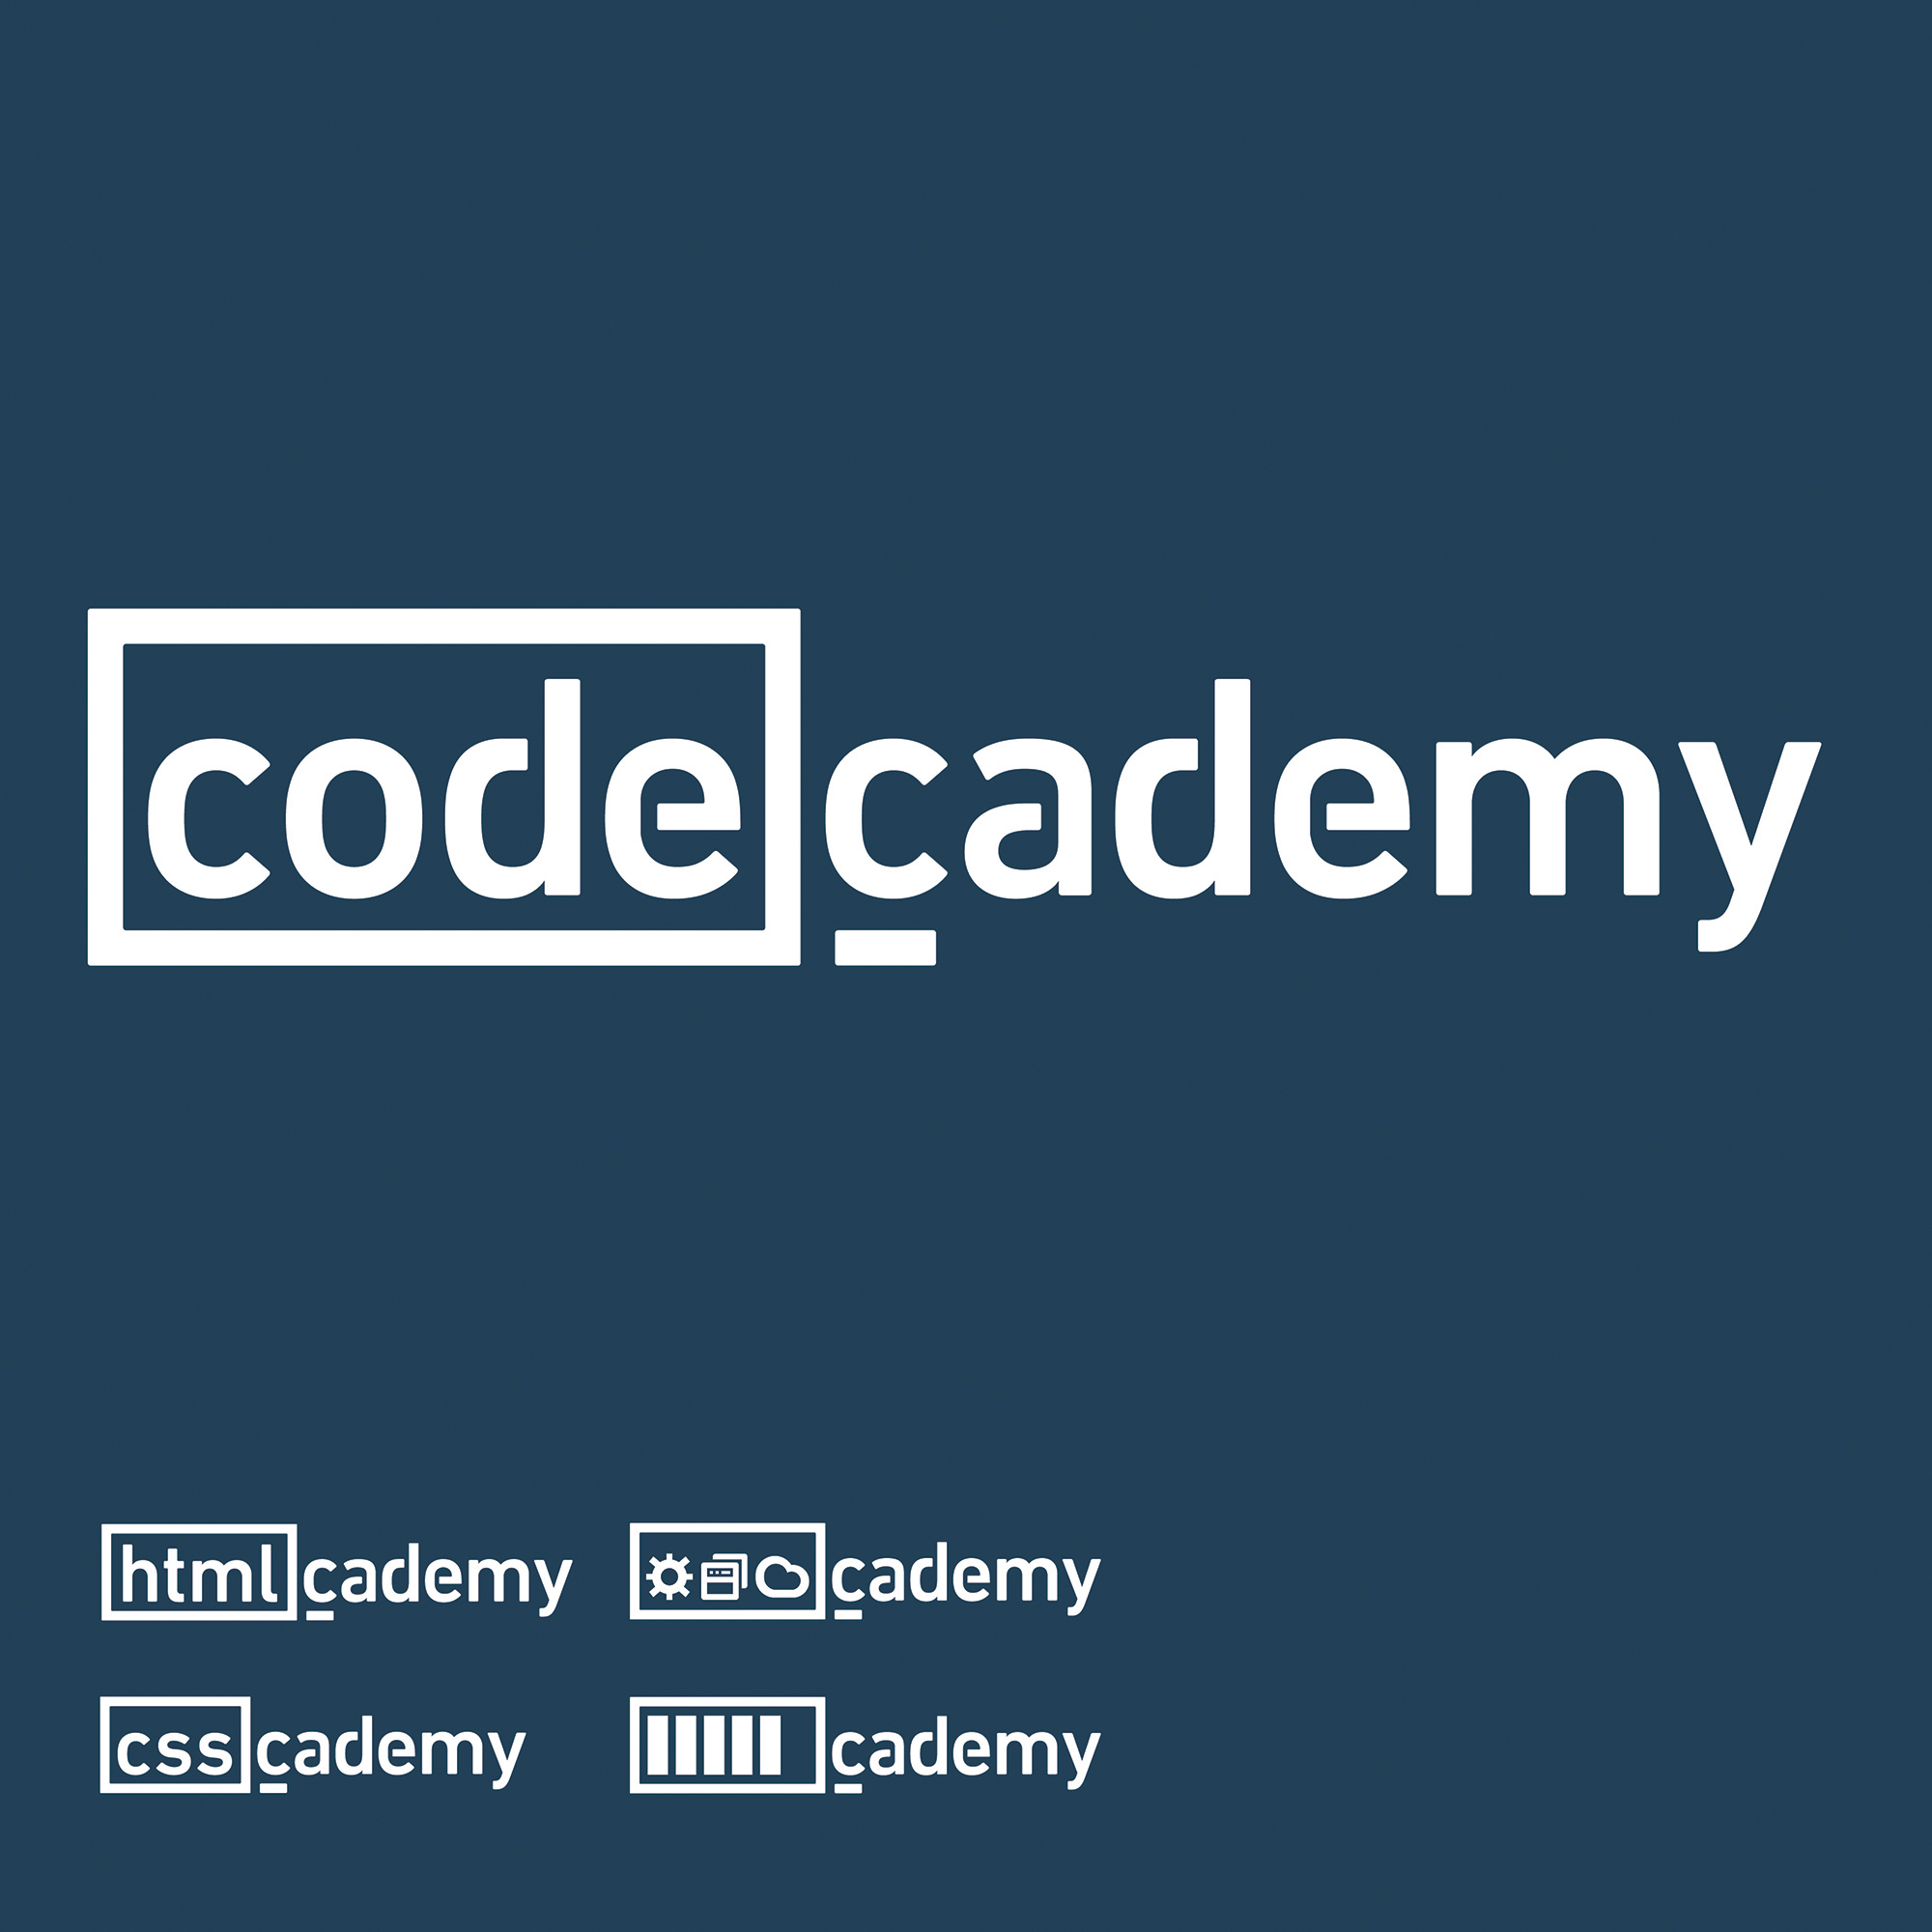 Cover image: Codecademy Identity